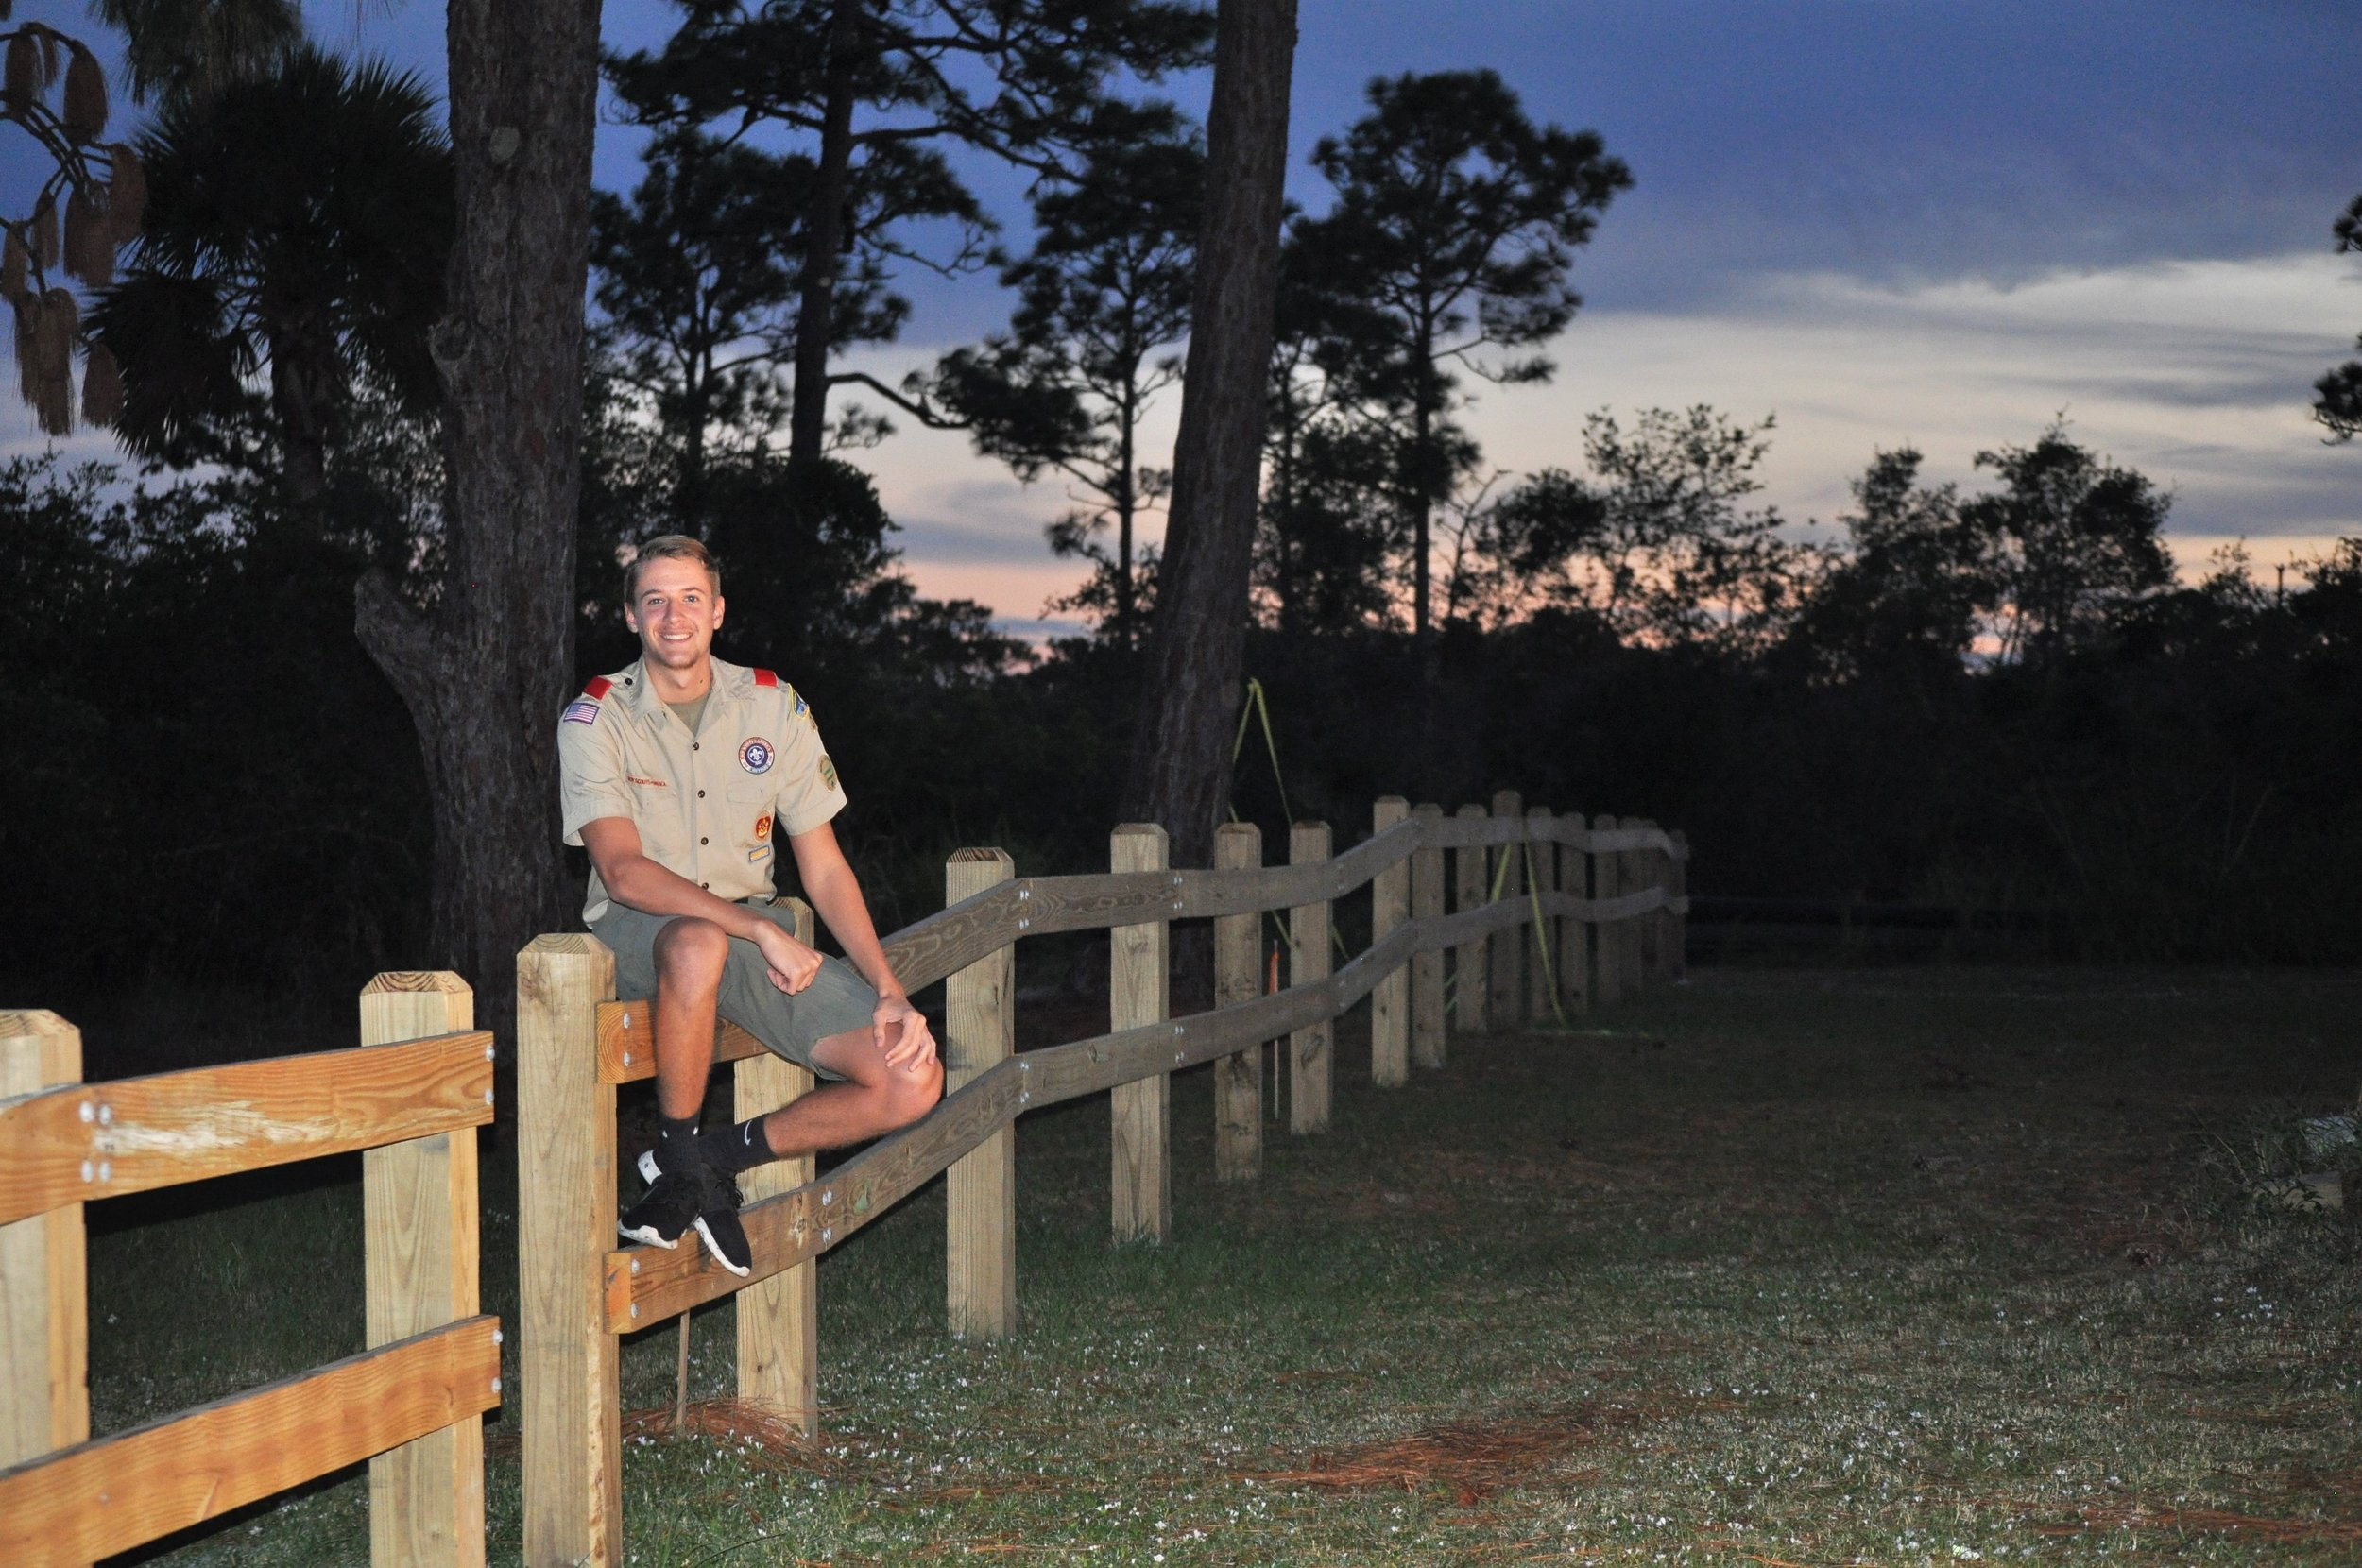 Eagle Scout Candidate Tim Flay, at the dawn of his project.